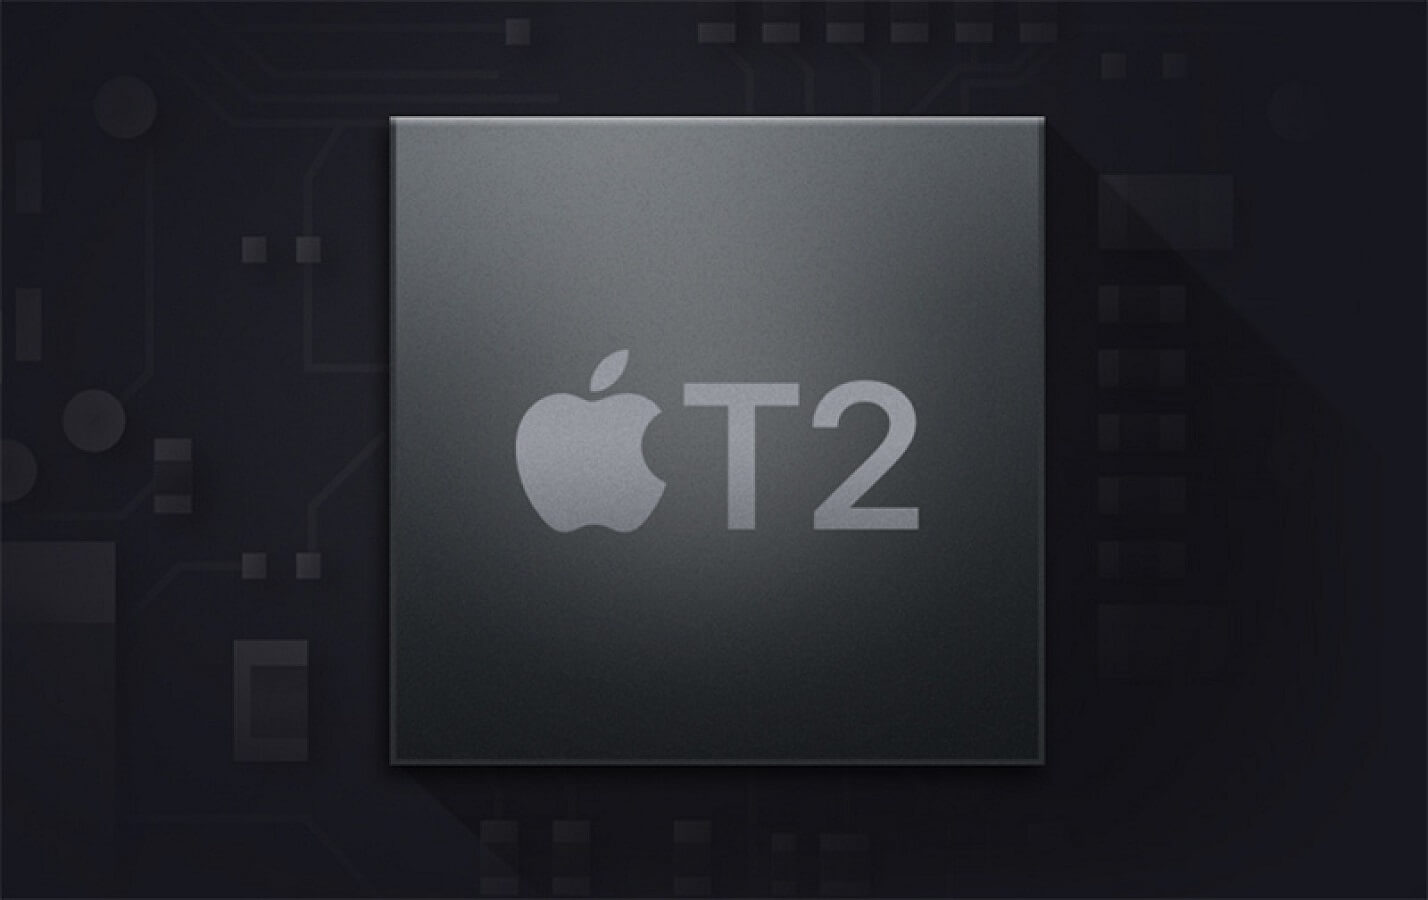 apple t2 security chip features